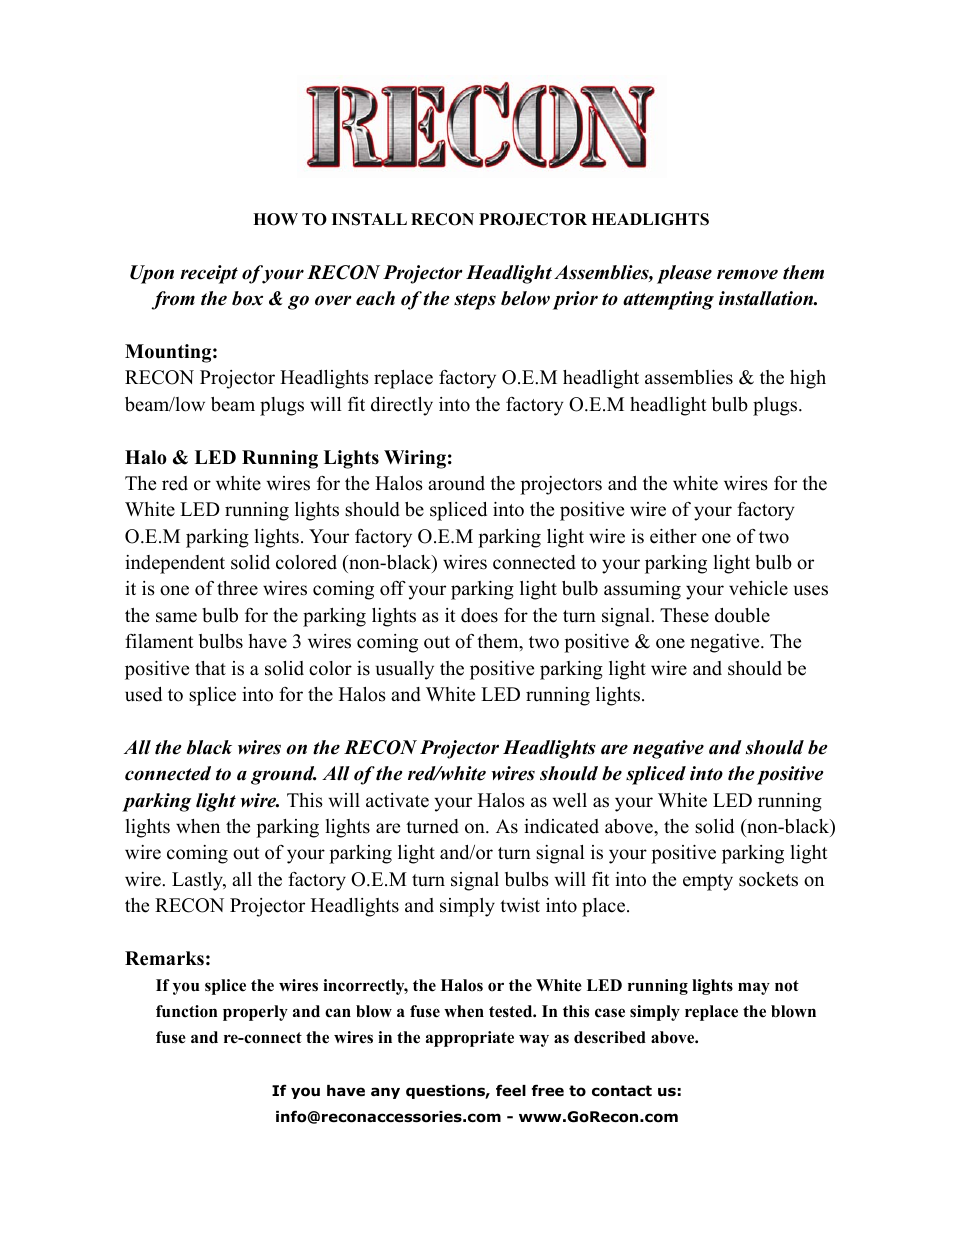 Recon Projector Headlights Universal User Manual 1 Page The Factory Wiring Or Po Of Our Before